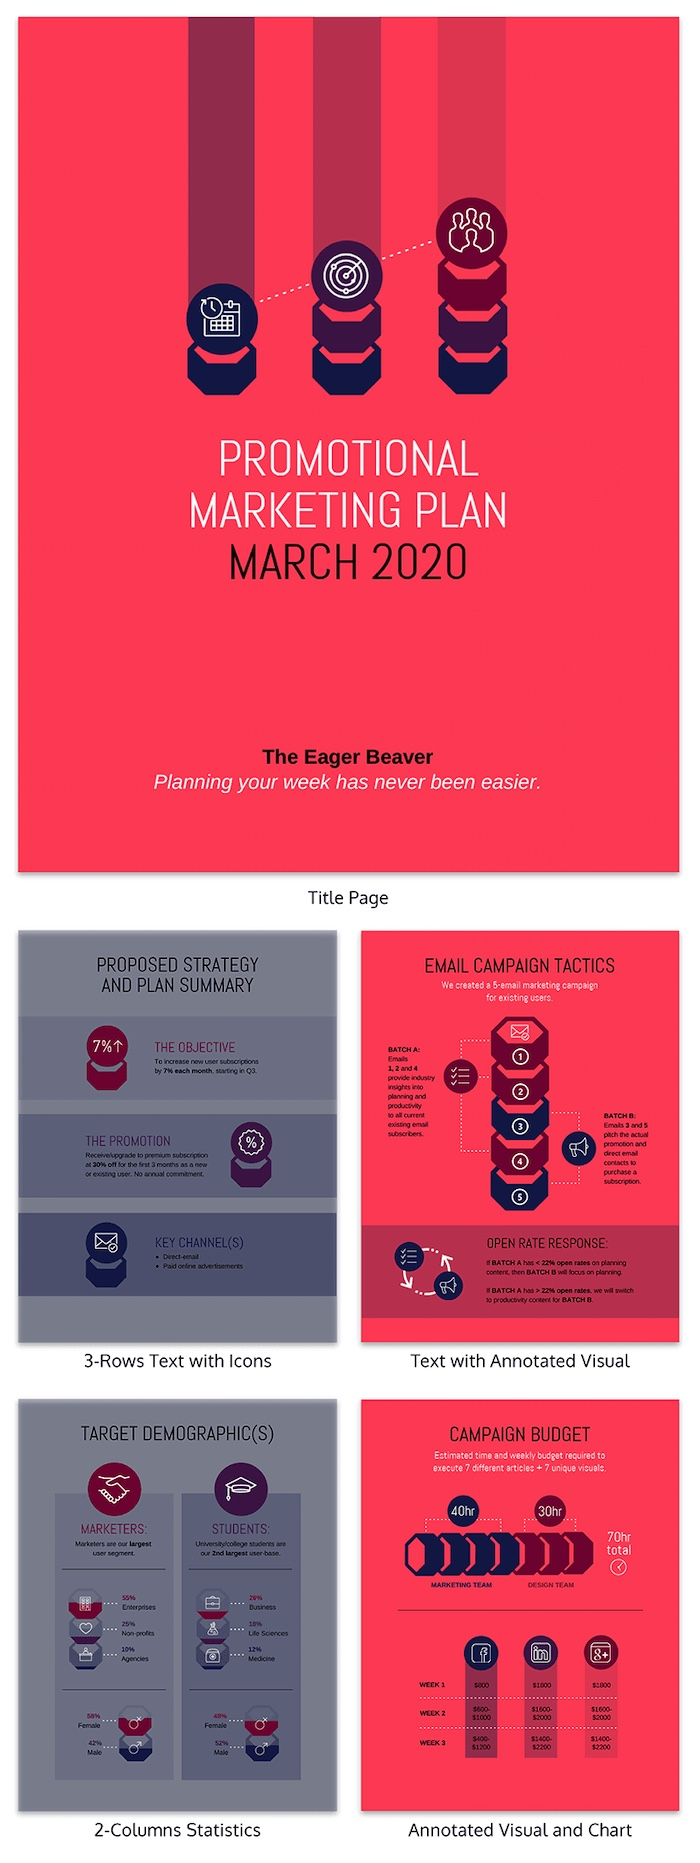 Red Promotional Marketing Plan Template